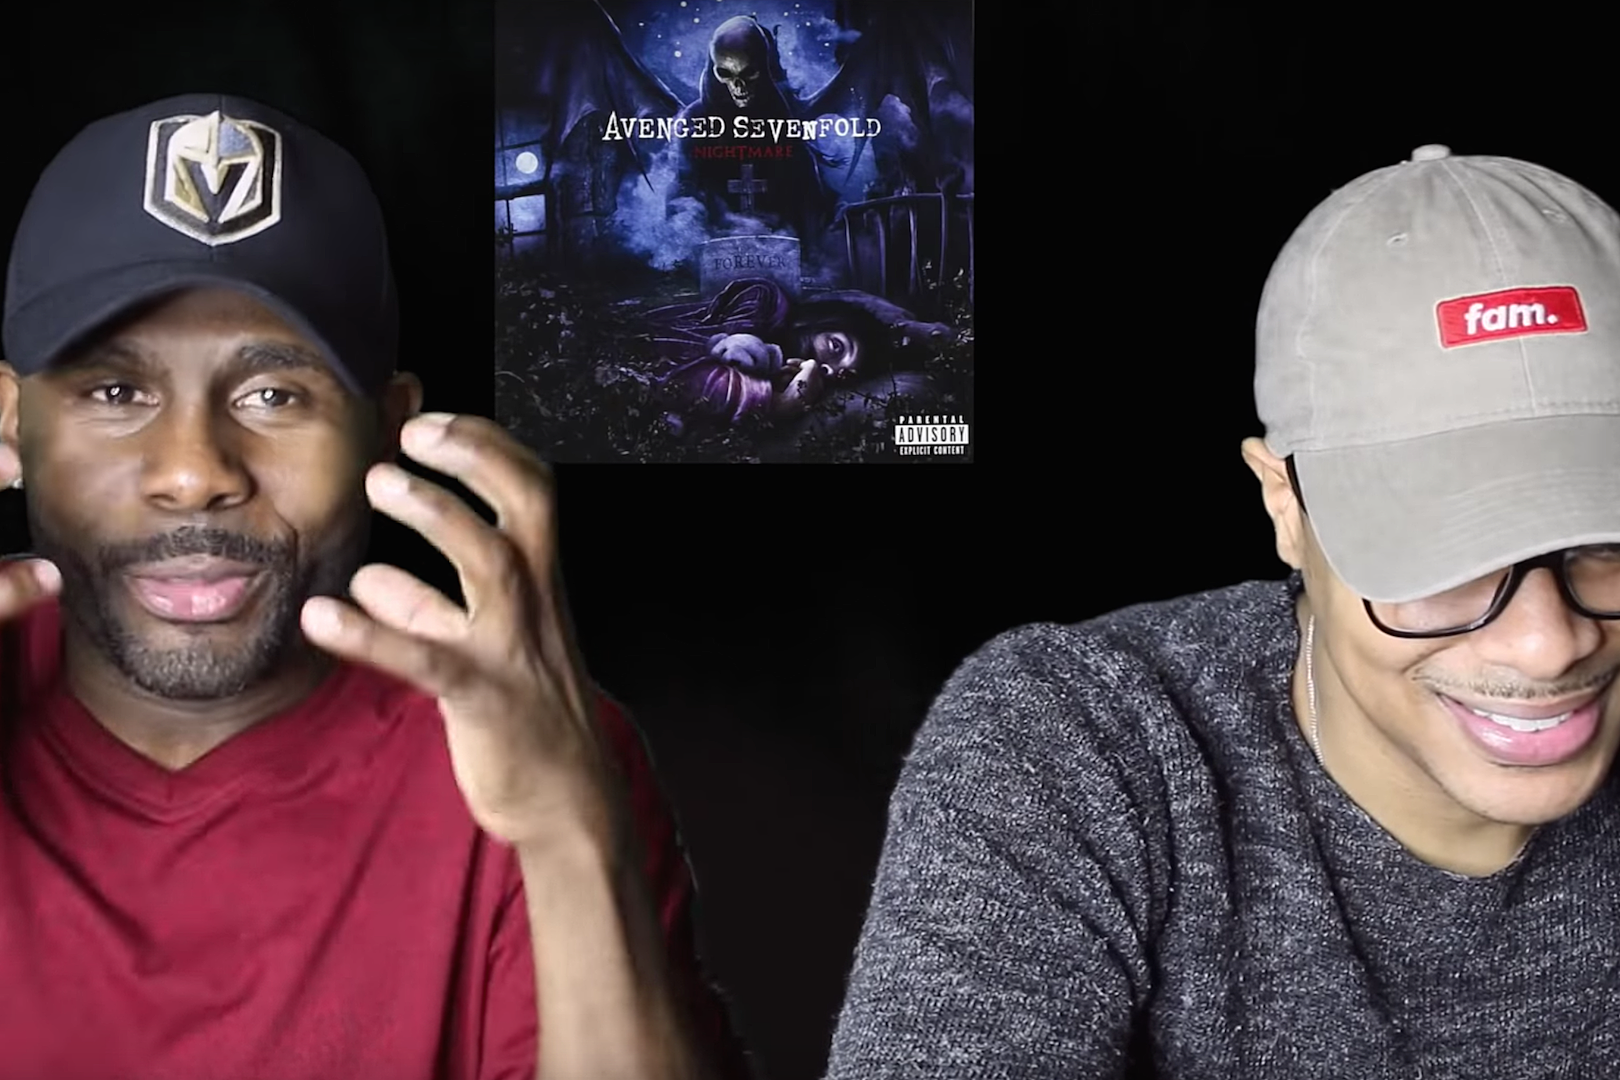 Lost in Vegas React to Avenged Sevenfold's 'Nightmare,' Don't Get the Hate